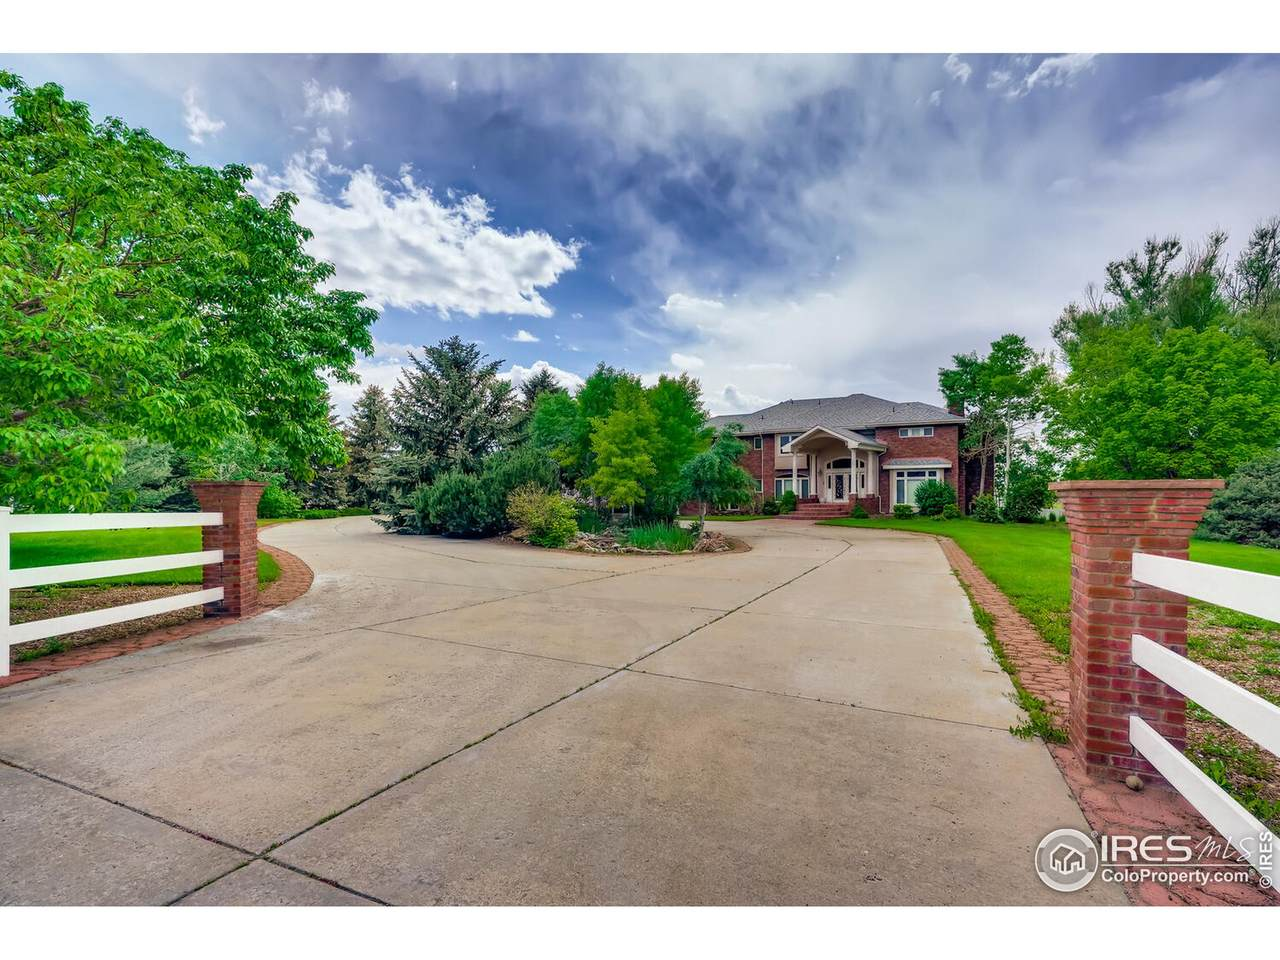 7803 Windsong Rd - Photo 1